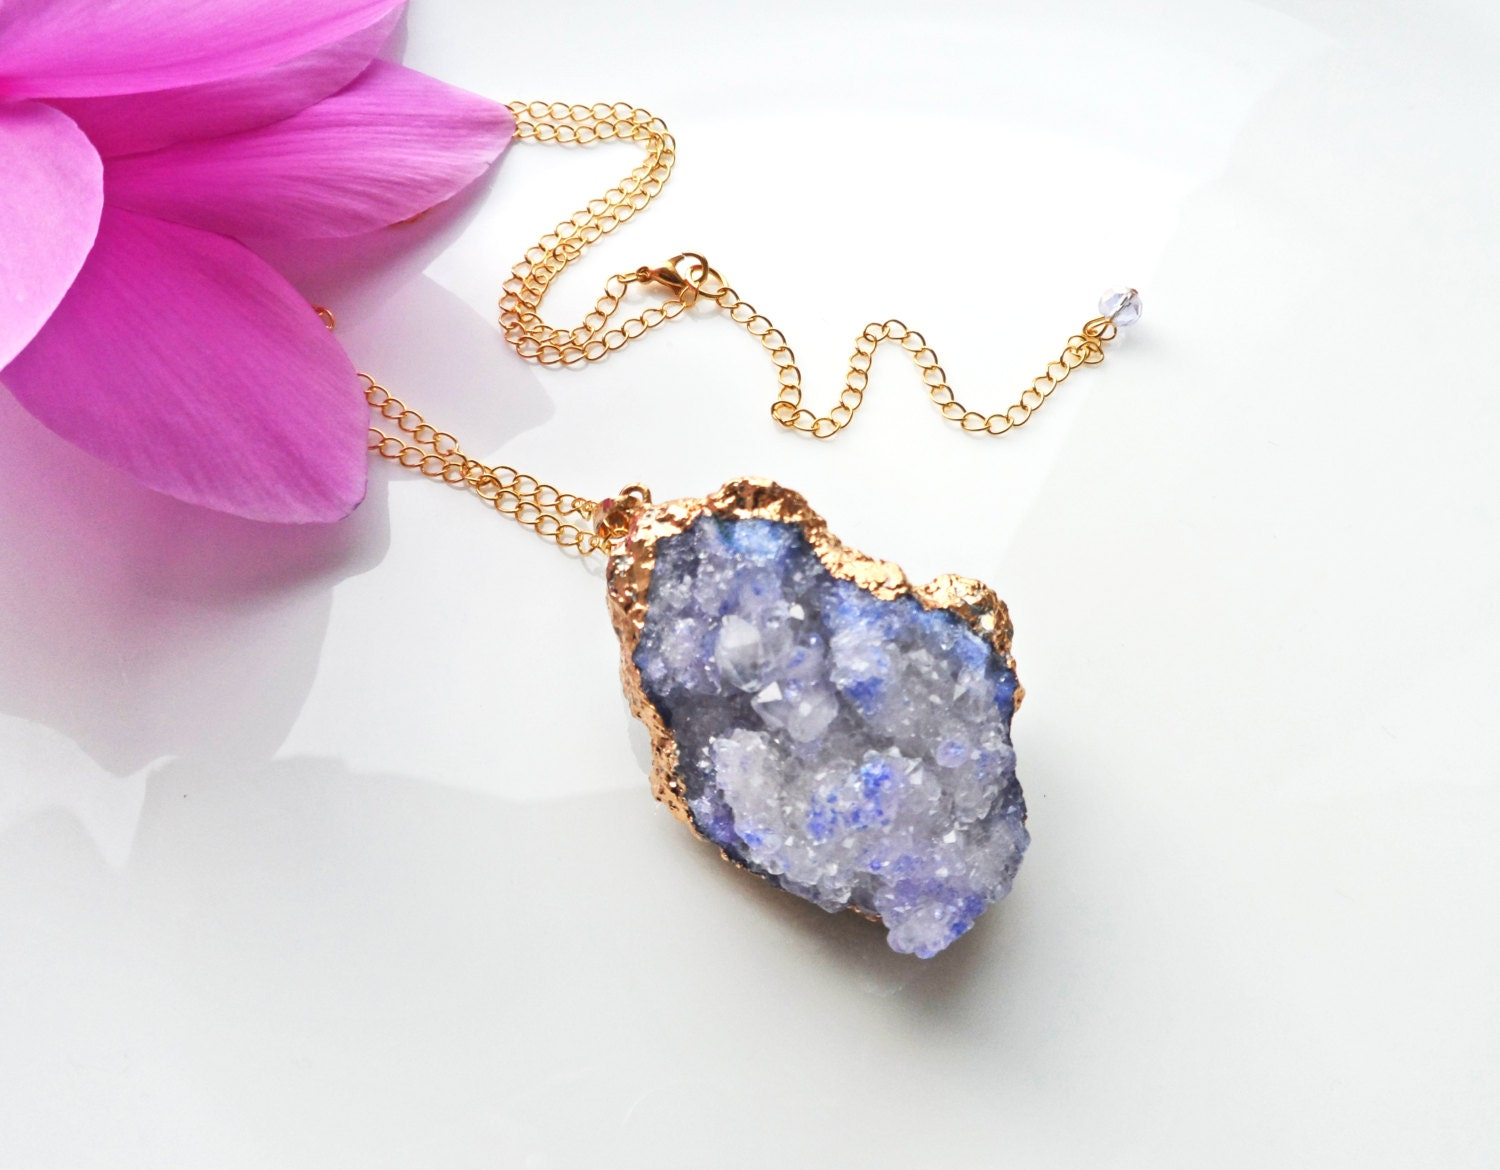 amethyst stone necklace - photo #20